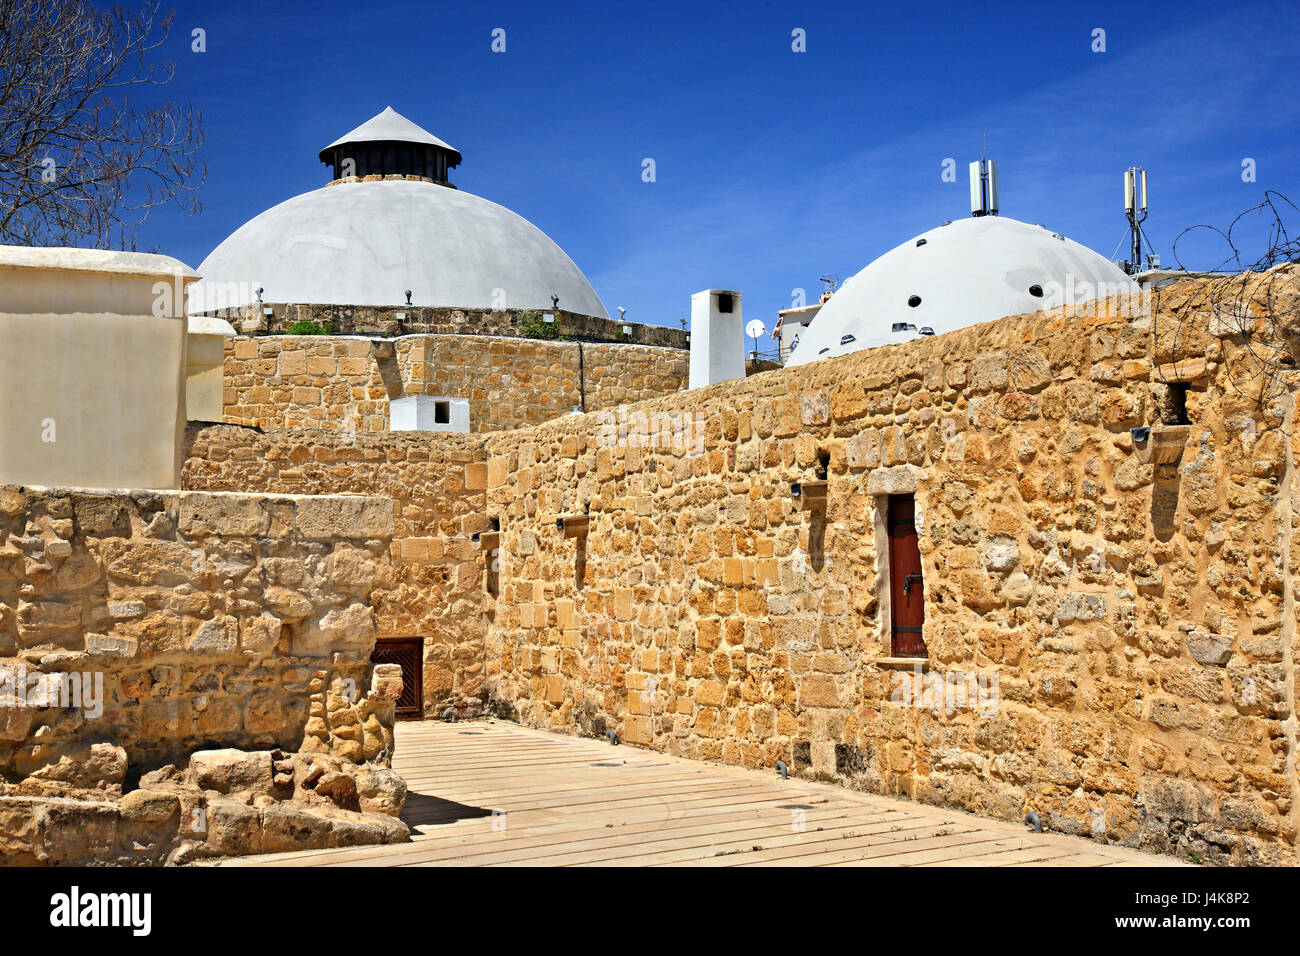 The Omerye hamam in the old town of Nicosia (Lefkosia), Cyprus - Stock Image